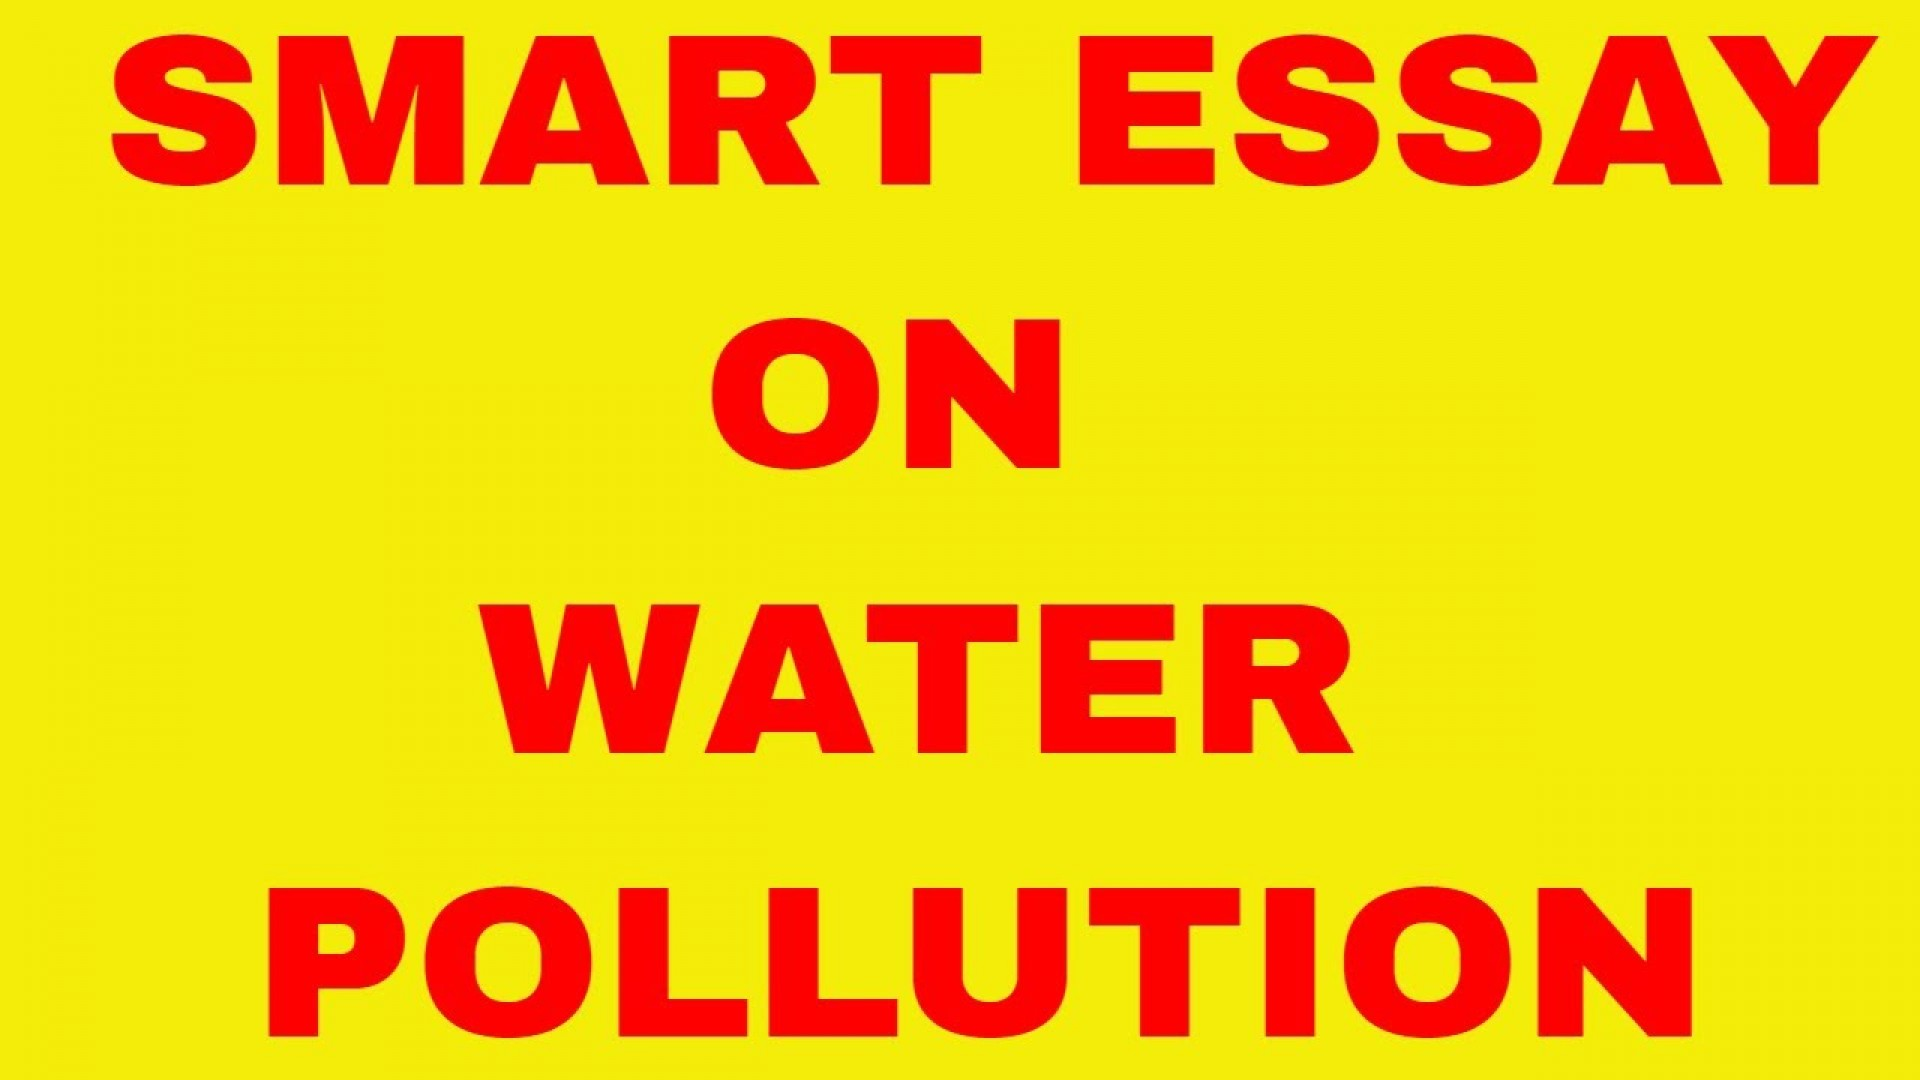 012 Maxresdefault Essay Example On Unbelievable Water Conservation Pollution In Hindi Crisis Pakistan 300 Words 1920